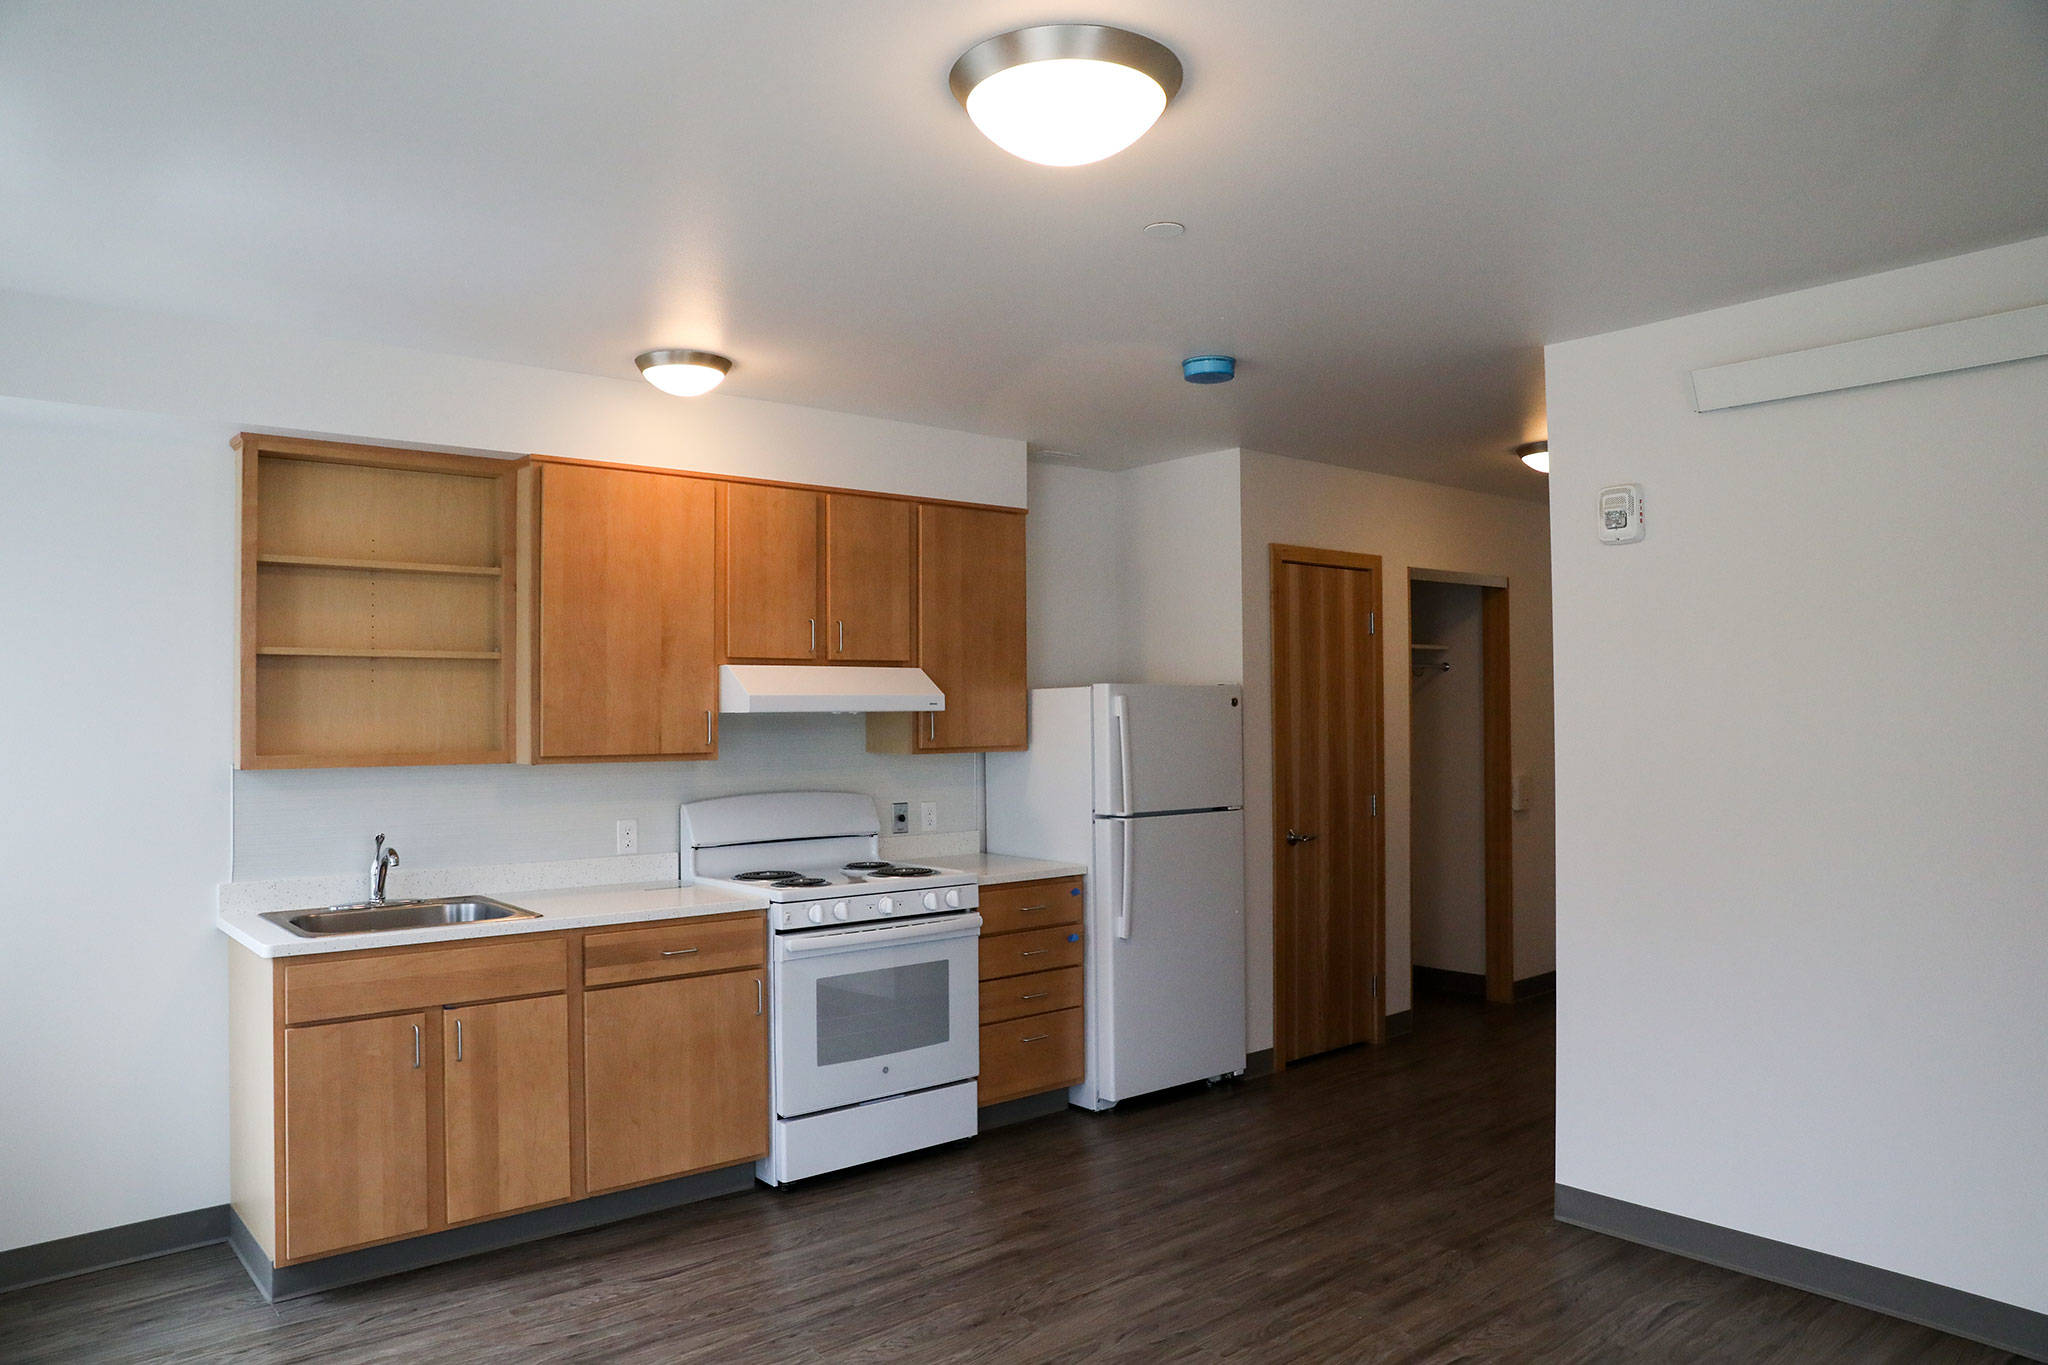 Clare's Place will have 10 one-bedroom apartments and 55 studio units, each with its own bathroom and kitchen. (Lizz Giordano / The Herald)